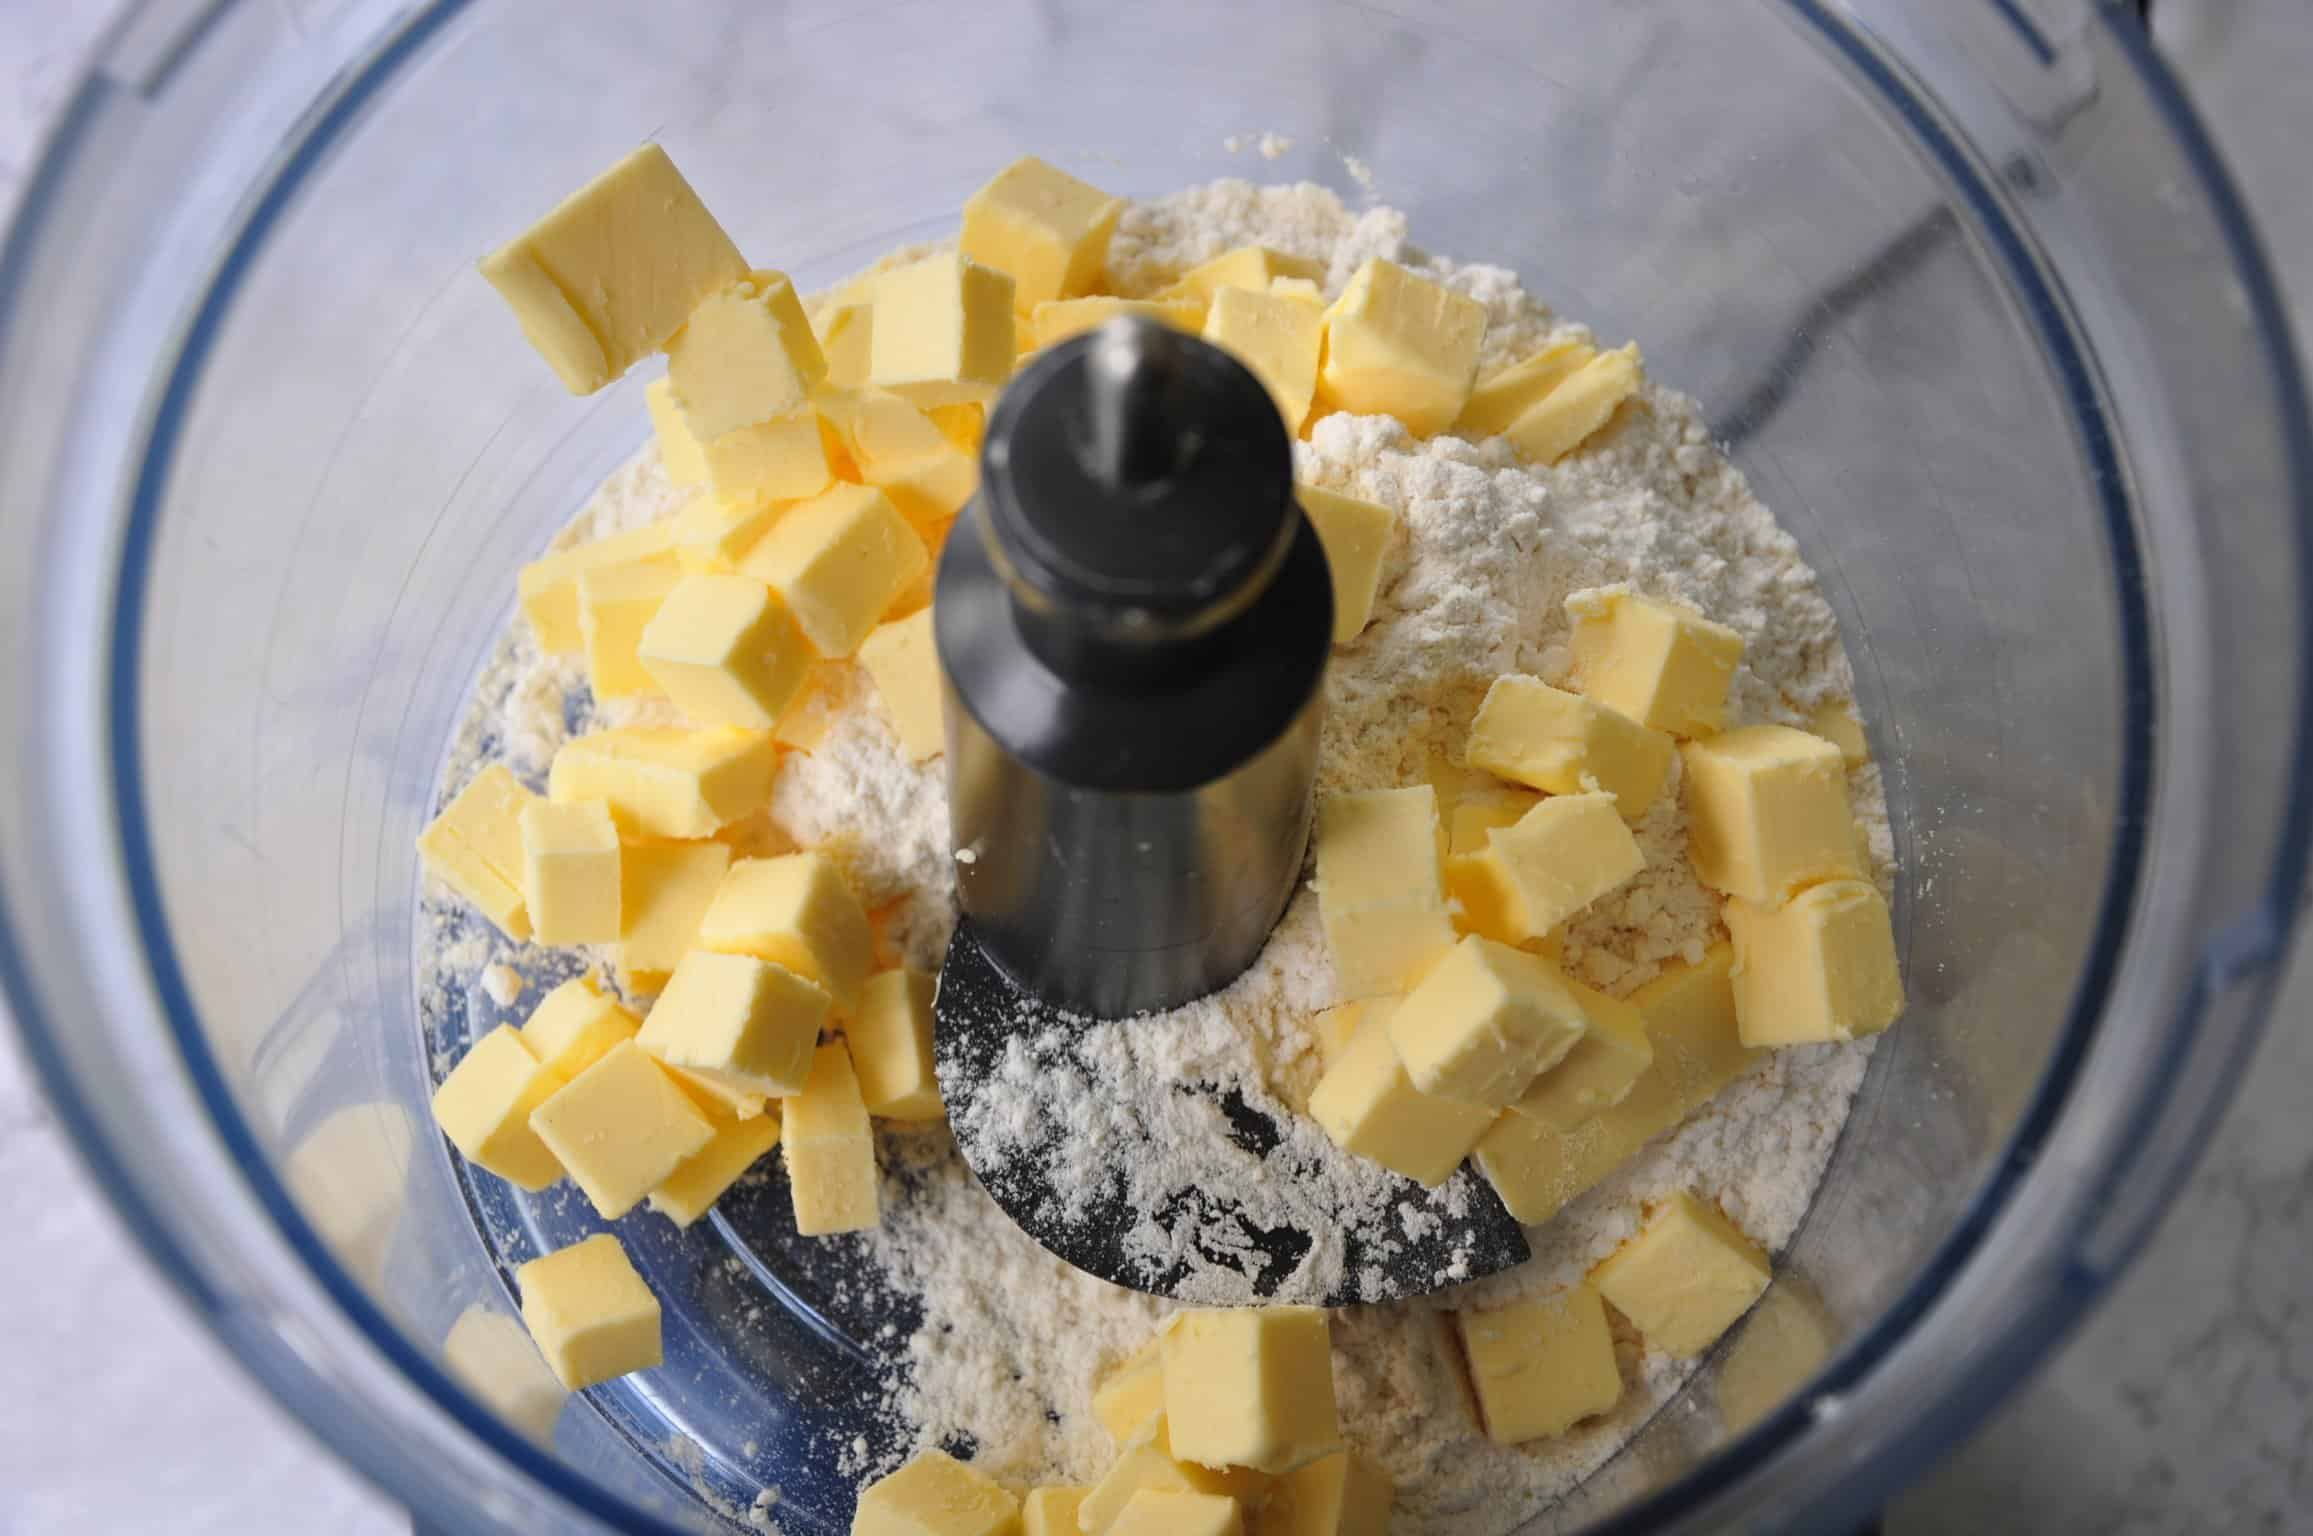 beef bourguignon pie flour and butter in food processor ready to make pastry